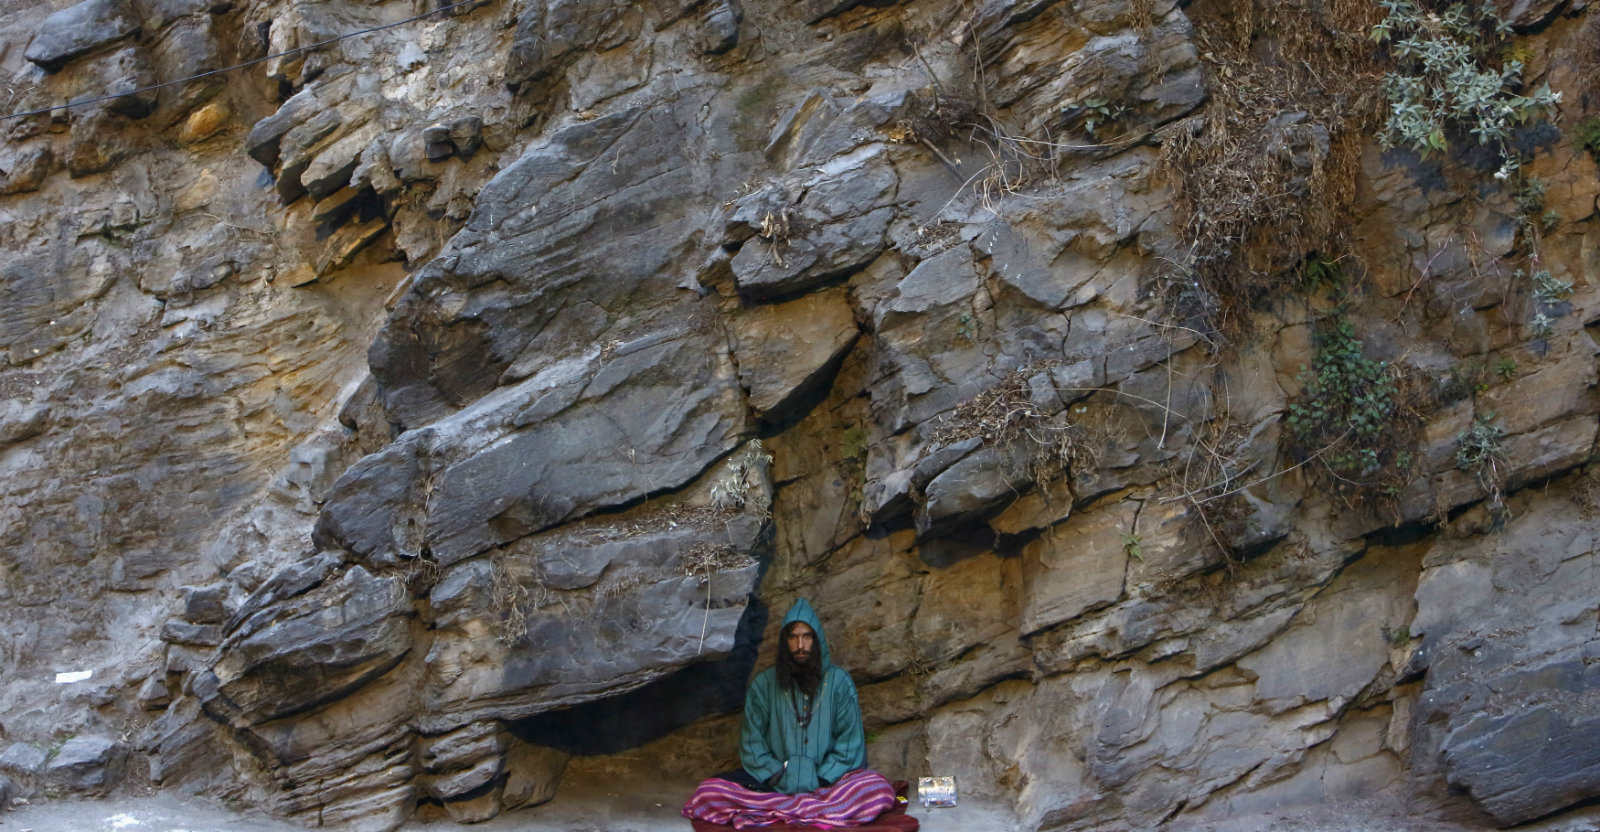 The Buddhist practice of Vipassana saved me from a breakdown